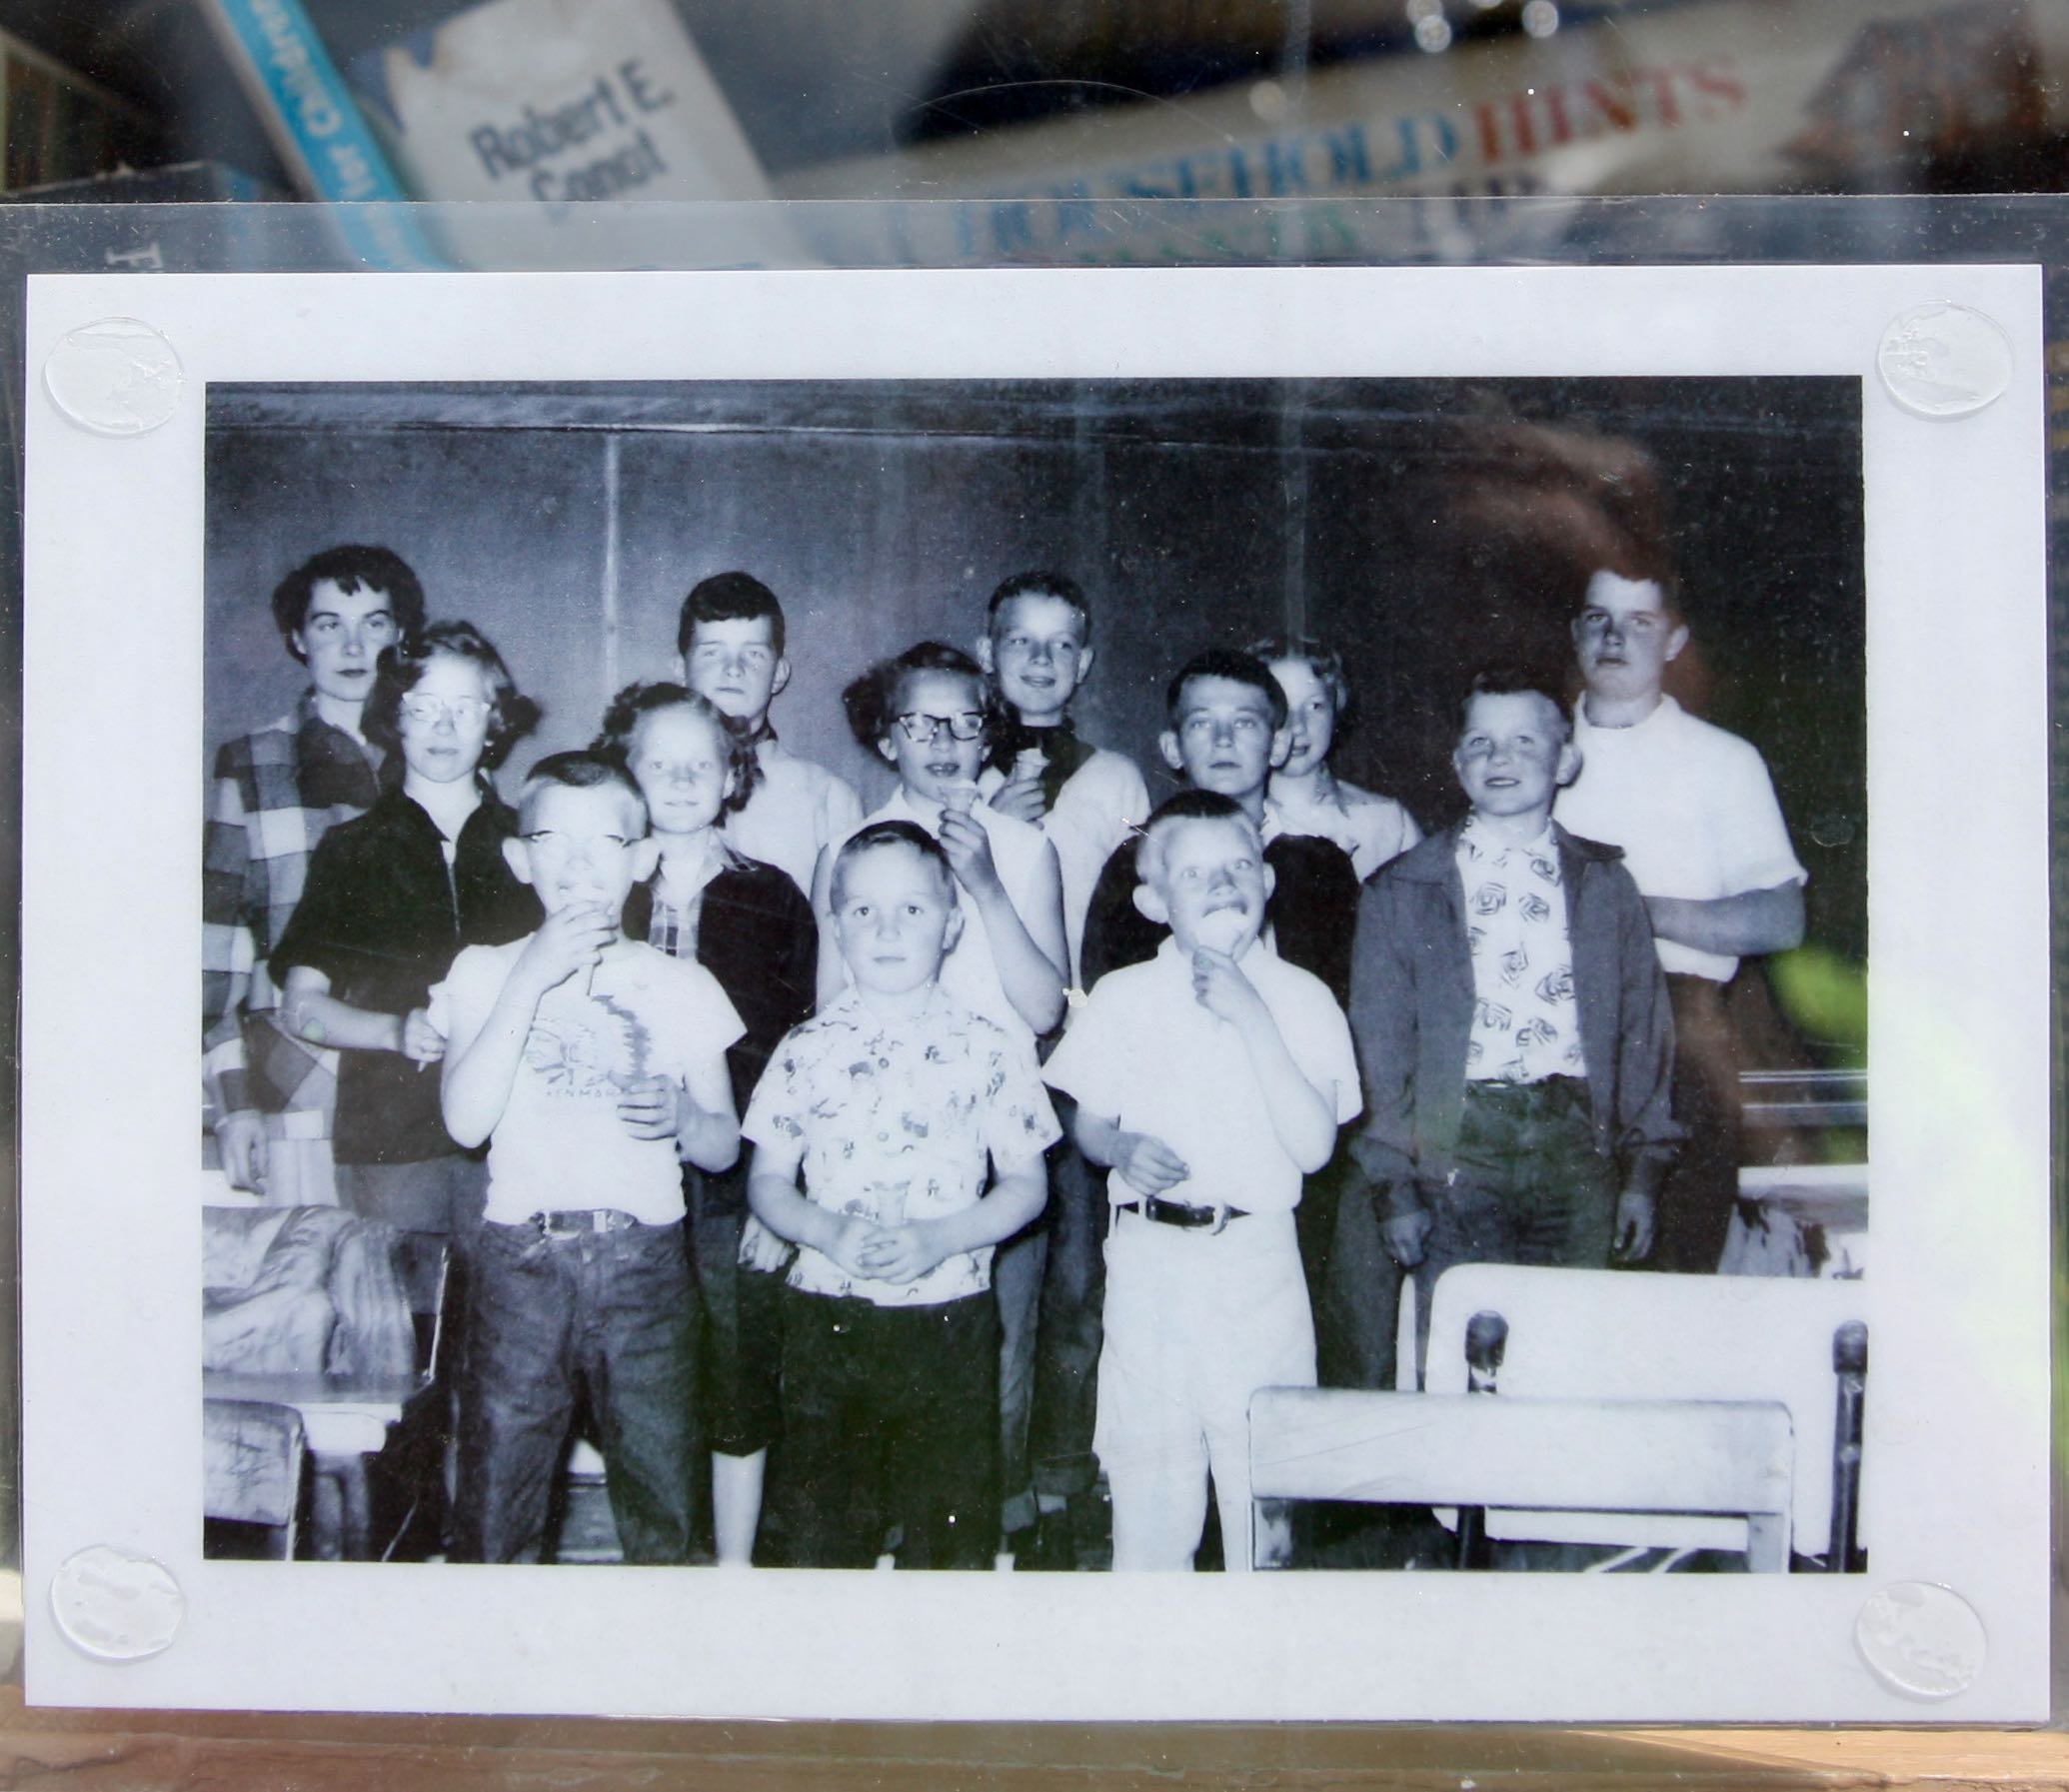 A photo taken in the rural North Dakota schoolhouse Keith Folkert attended in the 1950s. Keith is in the middle row, on the far right wearing a jacket. His brother is the boy in the middle of the front row.